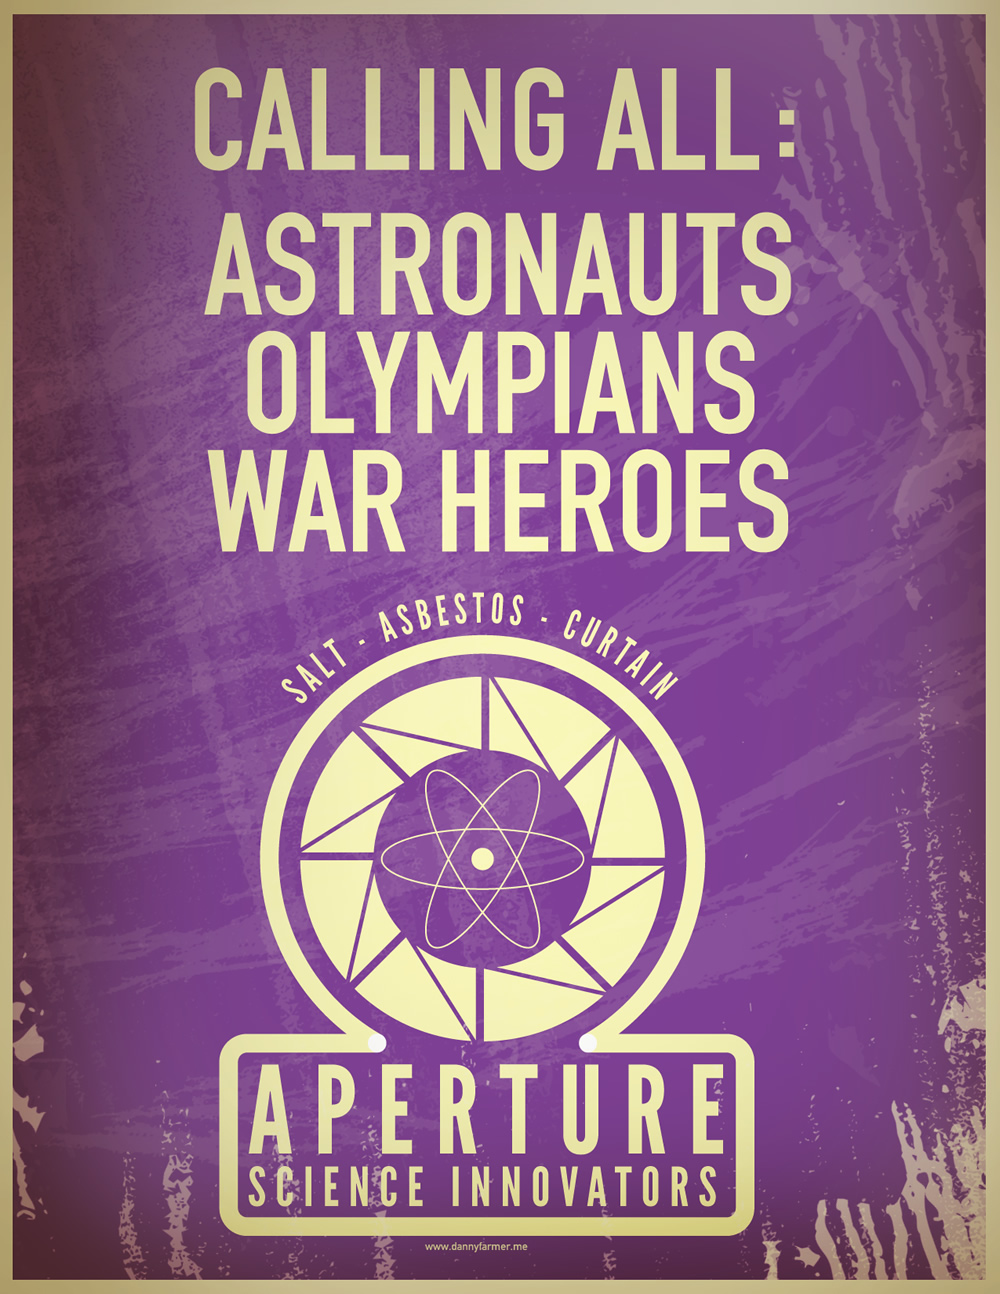 Calling all astronauts Olympians and war heroes Aperture Science